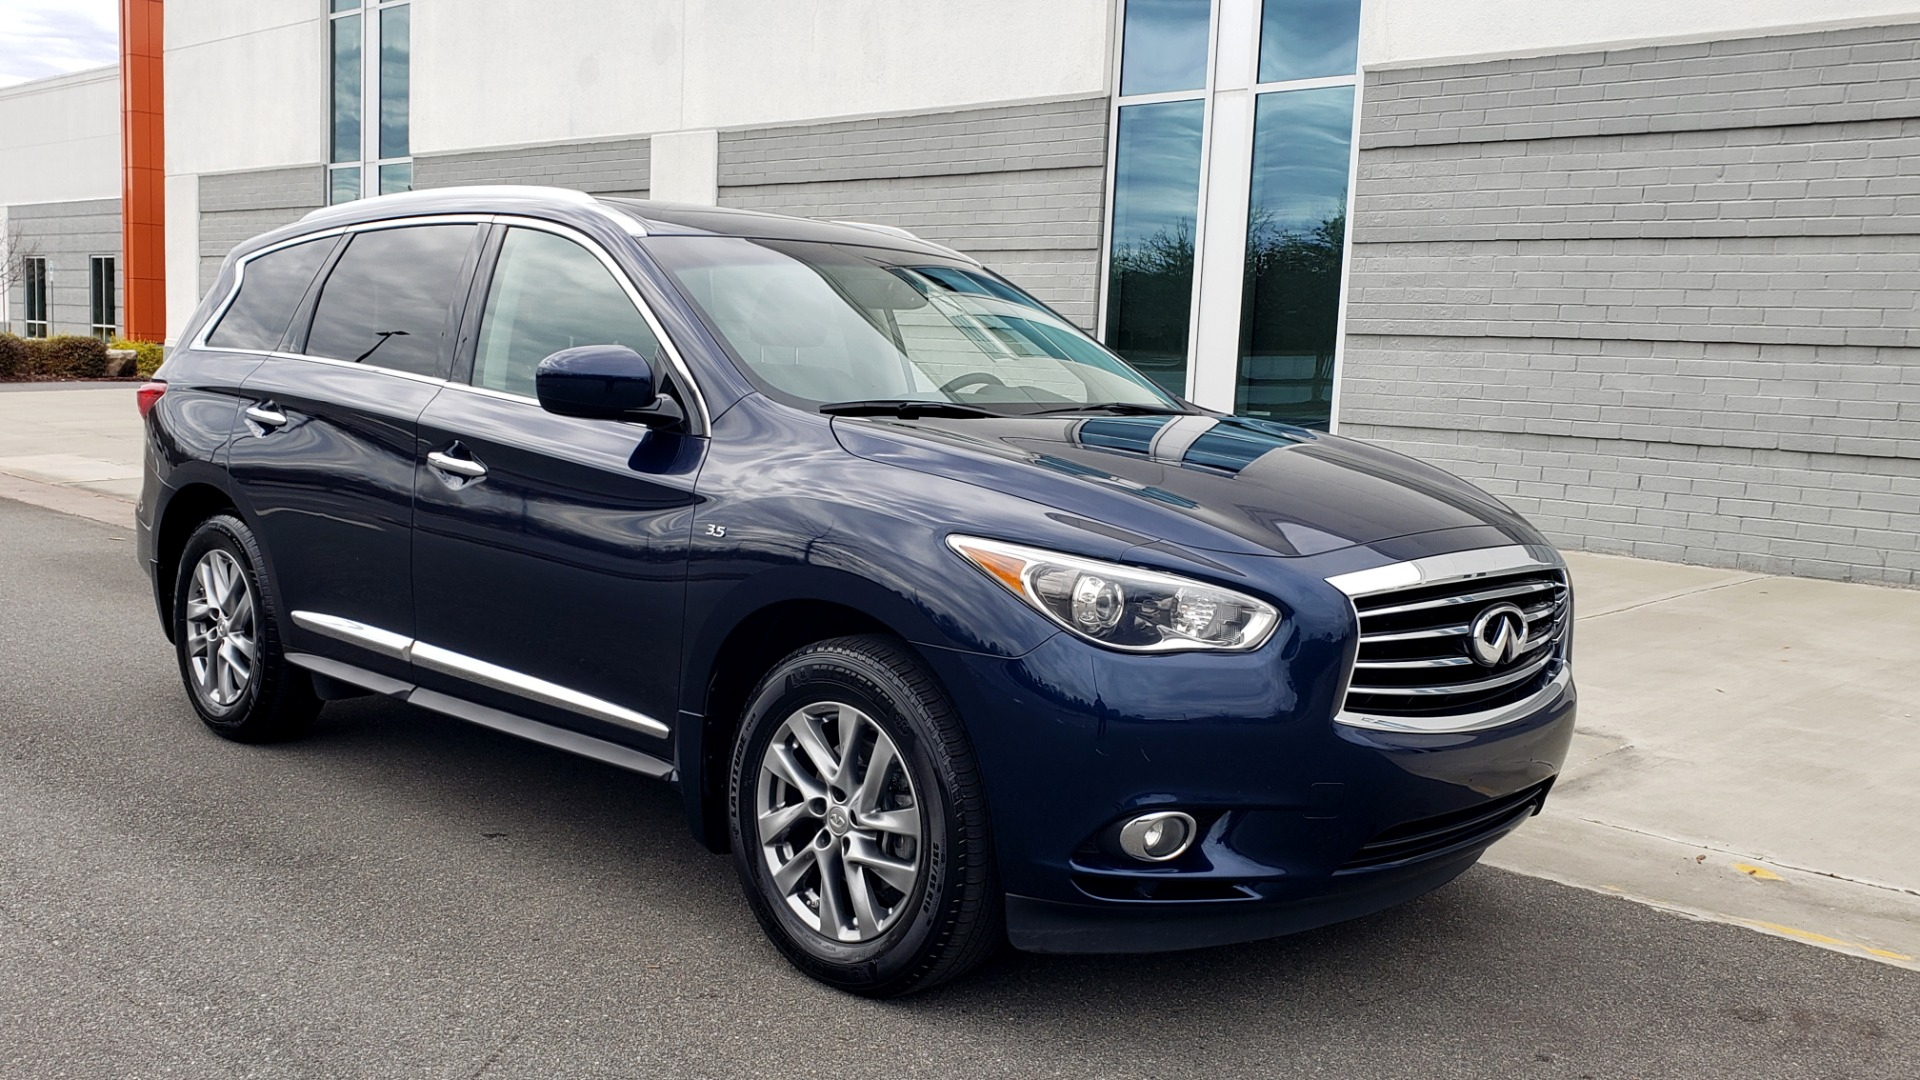 Used 2015 INFINITI QX60 3.5L SUV / CVT AUTO / 3-ROW / SUNROOF / REARVIEW for sale $23,995 at Formula Imports in Charlotte NC 28227 8